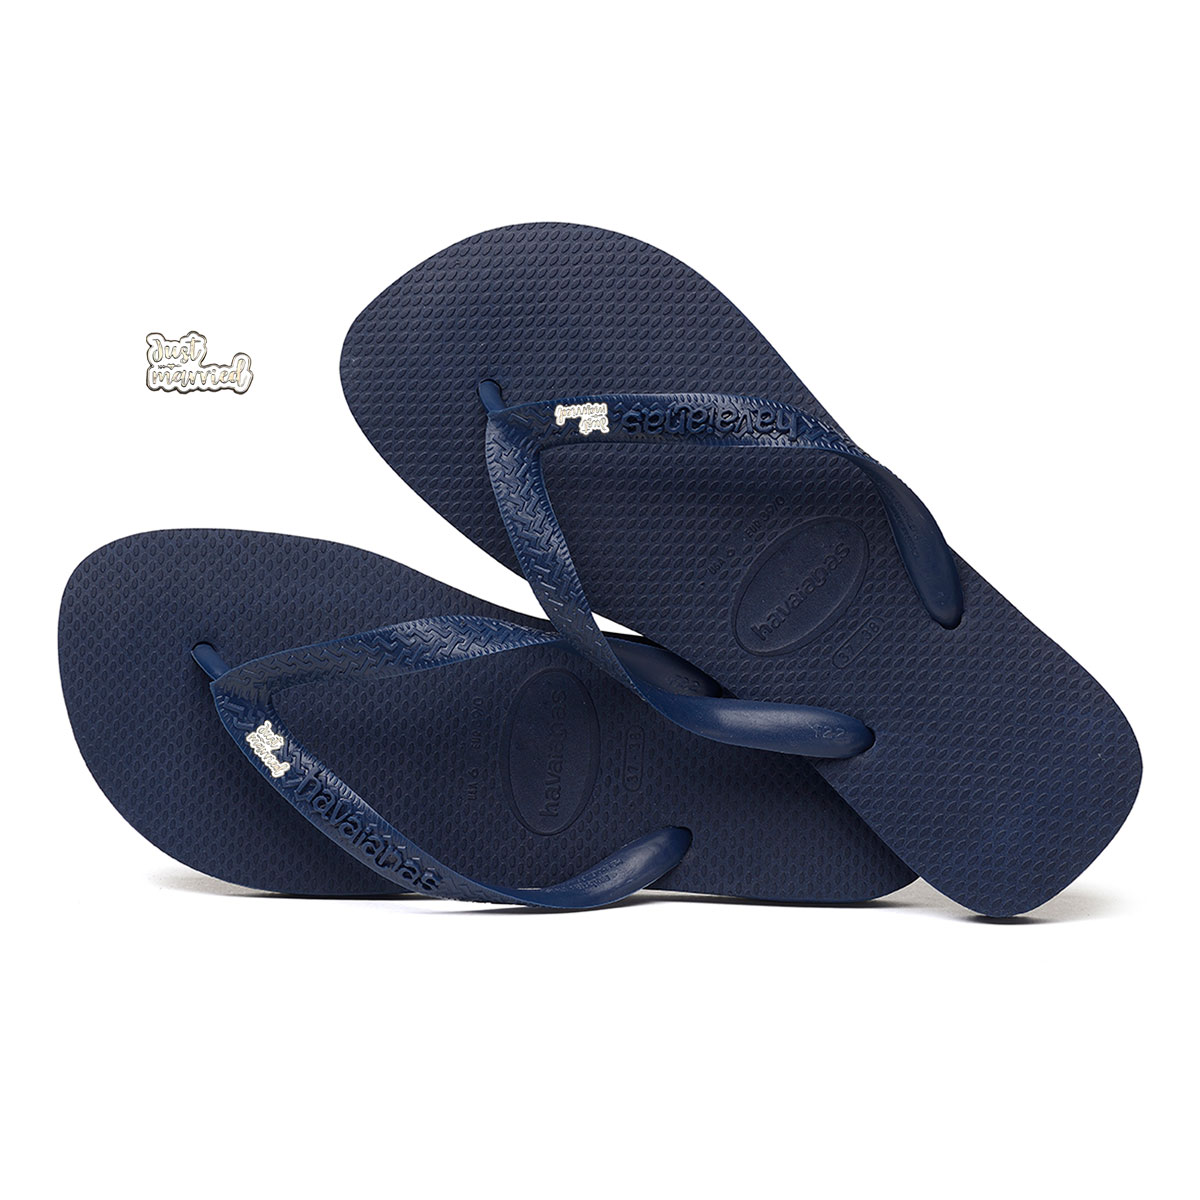 'Just Married' Silver White Charm Havaianas Top Navy Wedding Flip Flops